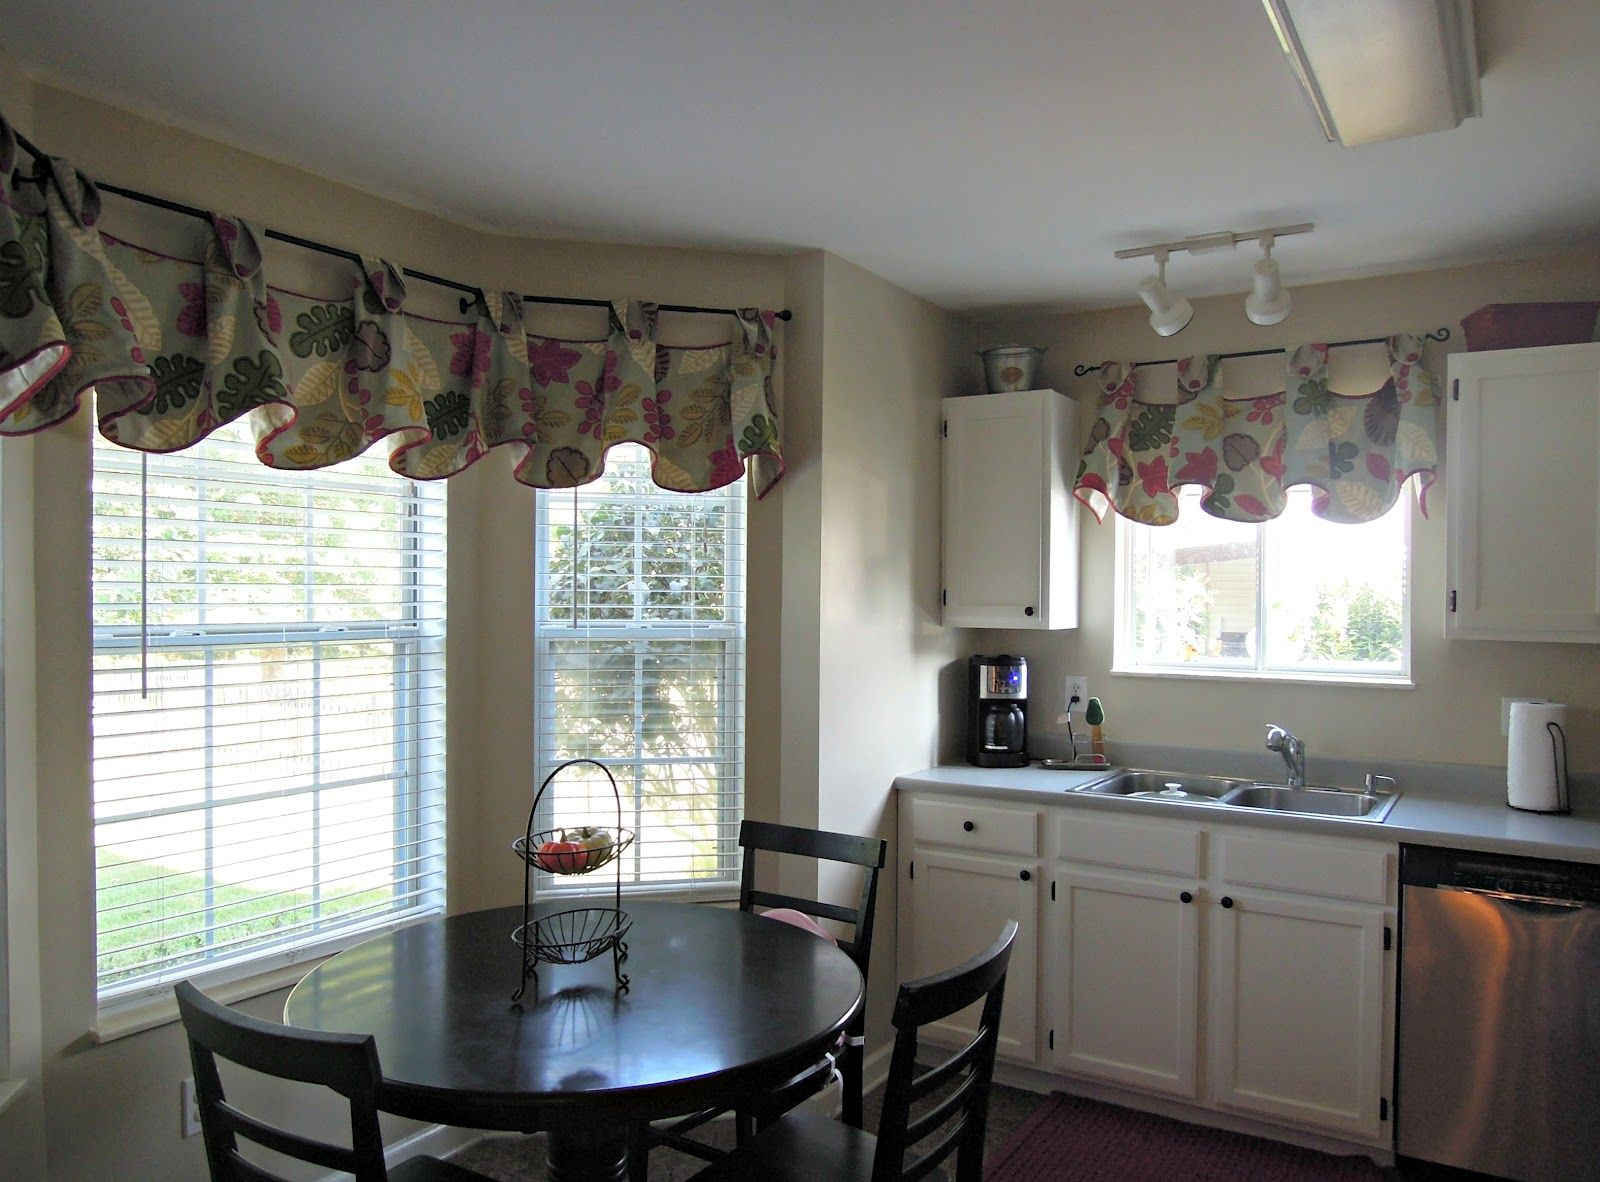 Dining Room Valance Ideas Part - 45: Home Design, Retro Small Kitchen Dinner With Black Table Sets And Catchy  Bay Window Treatment Valance: Creative Bay Window Treatment To Add Stunning  ...